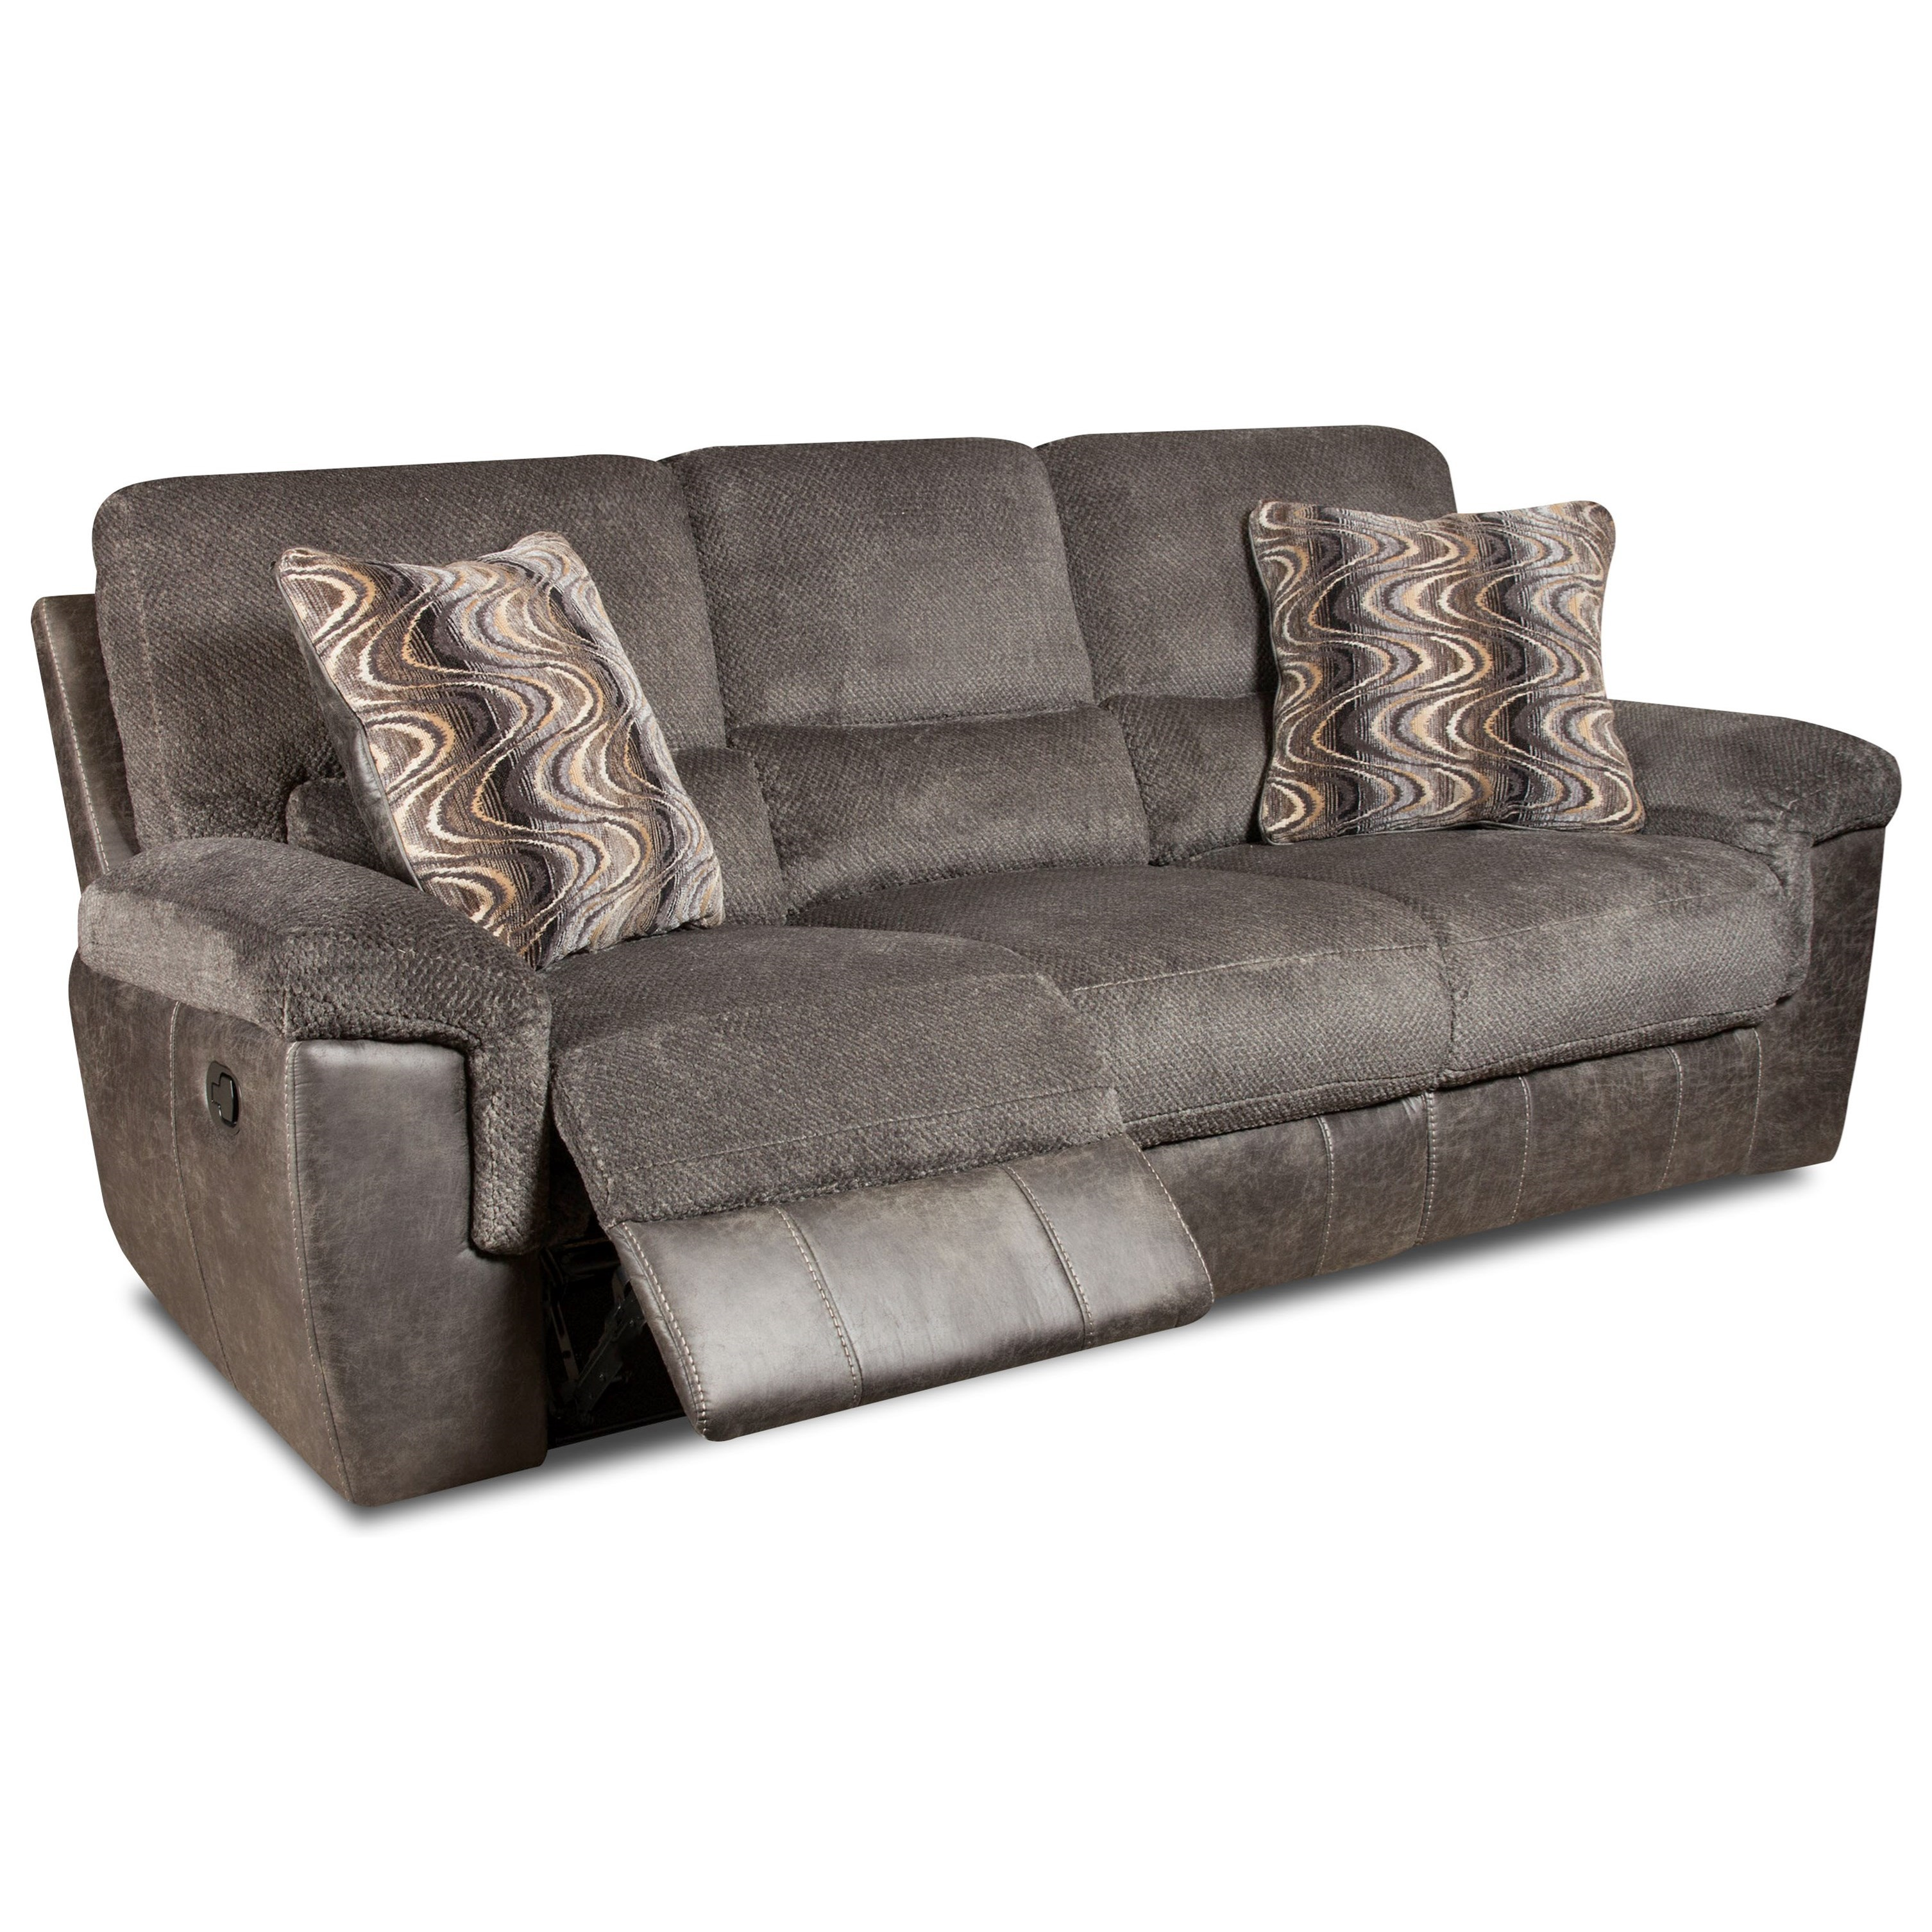 35003 Reclining Sofa by Corinthian at Story & Lee Furniture